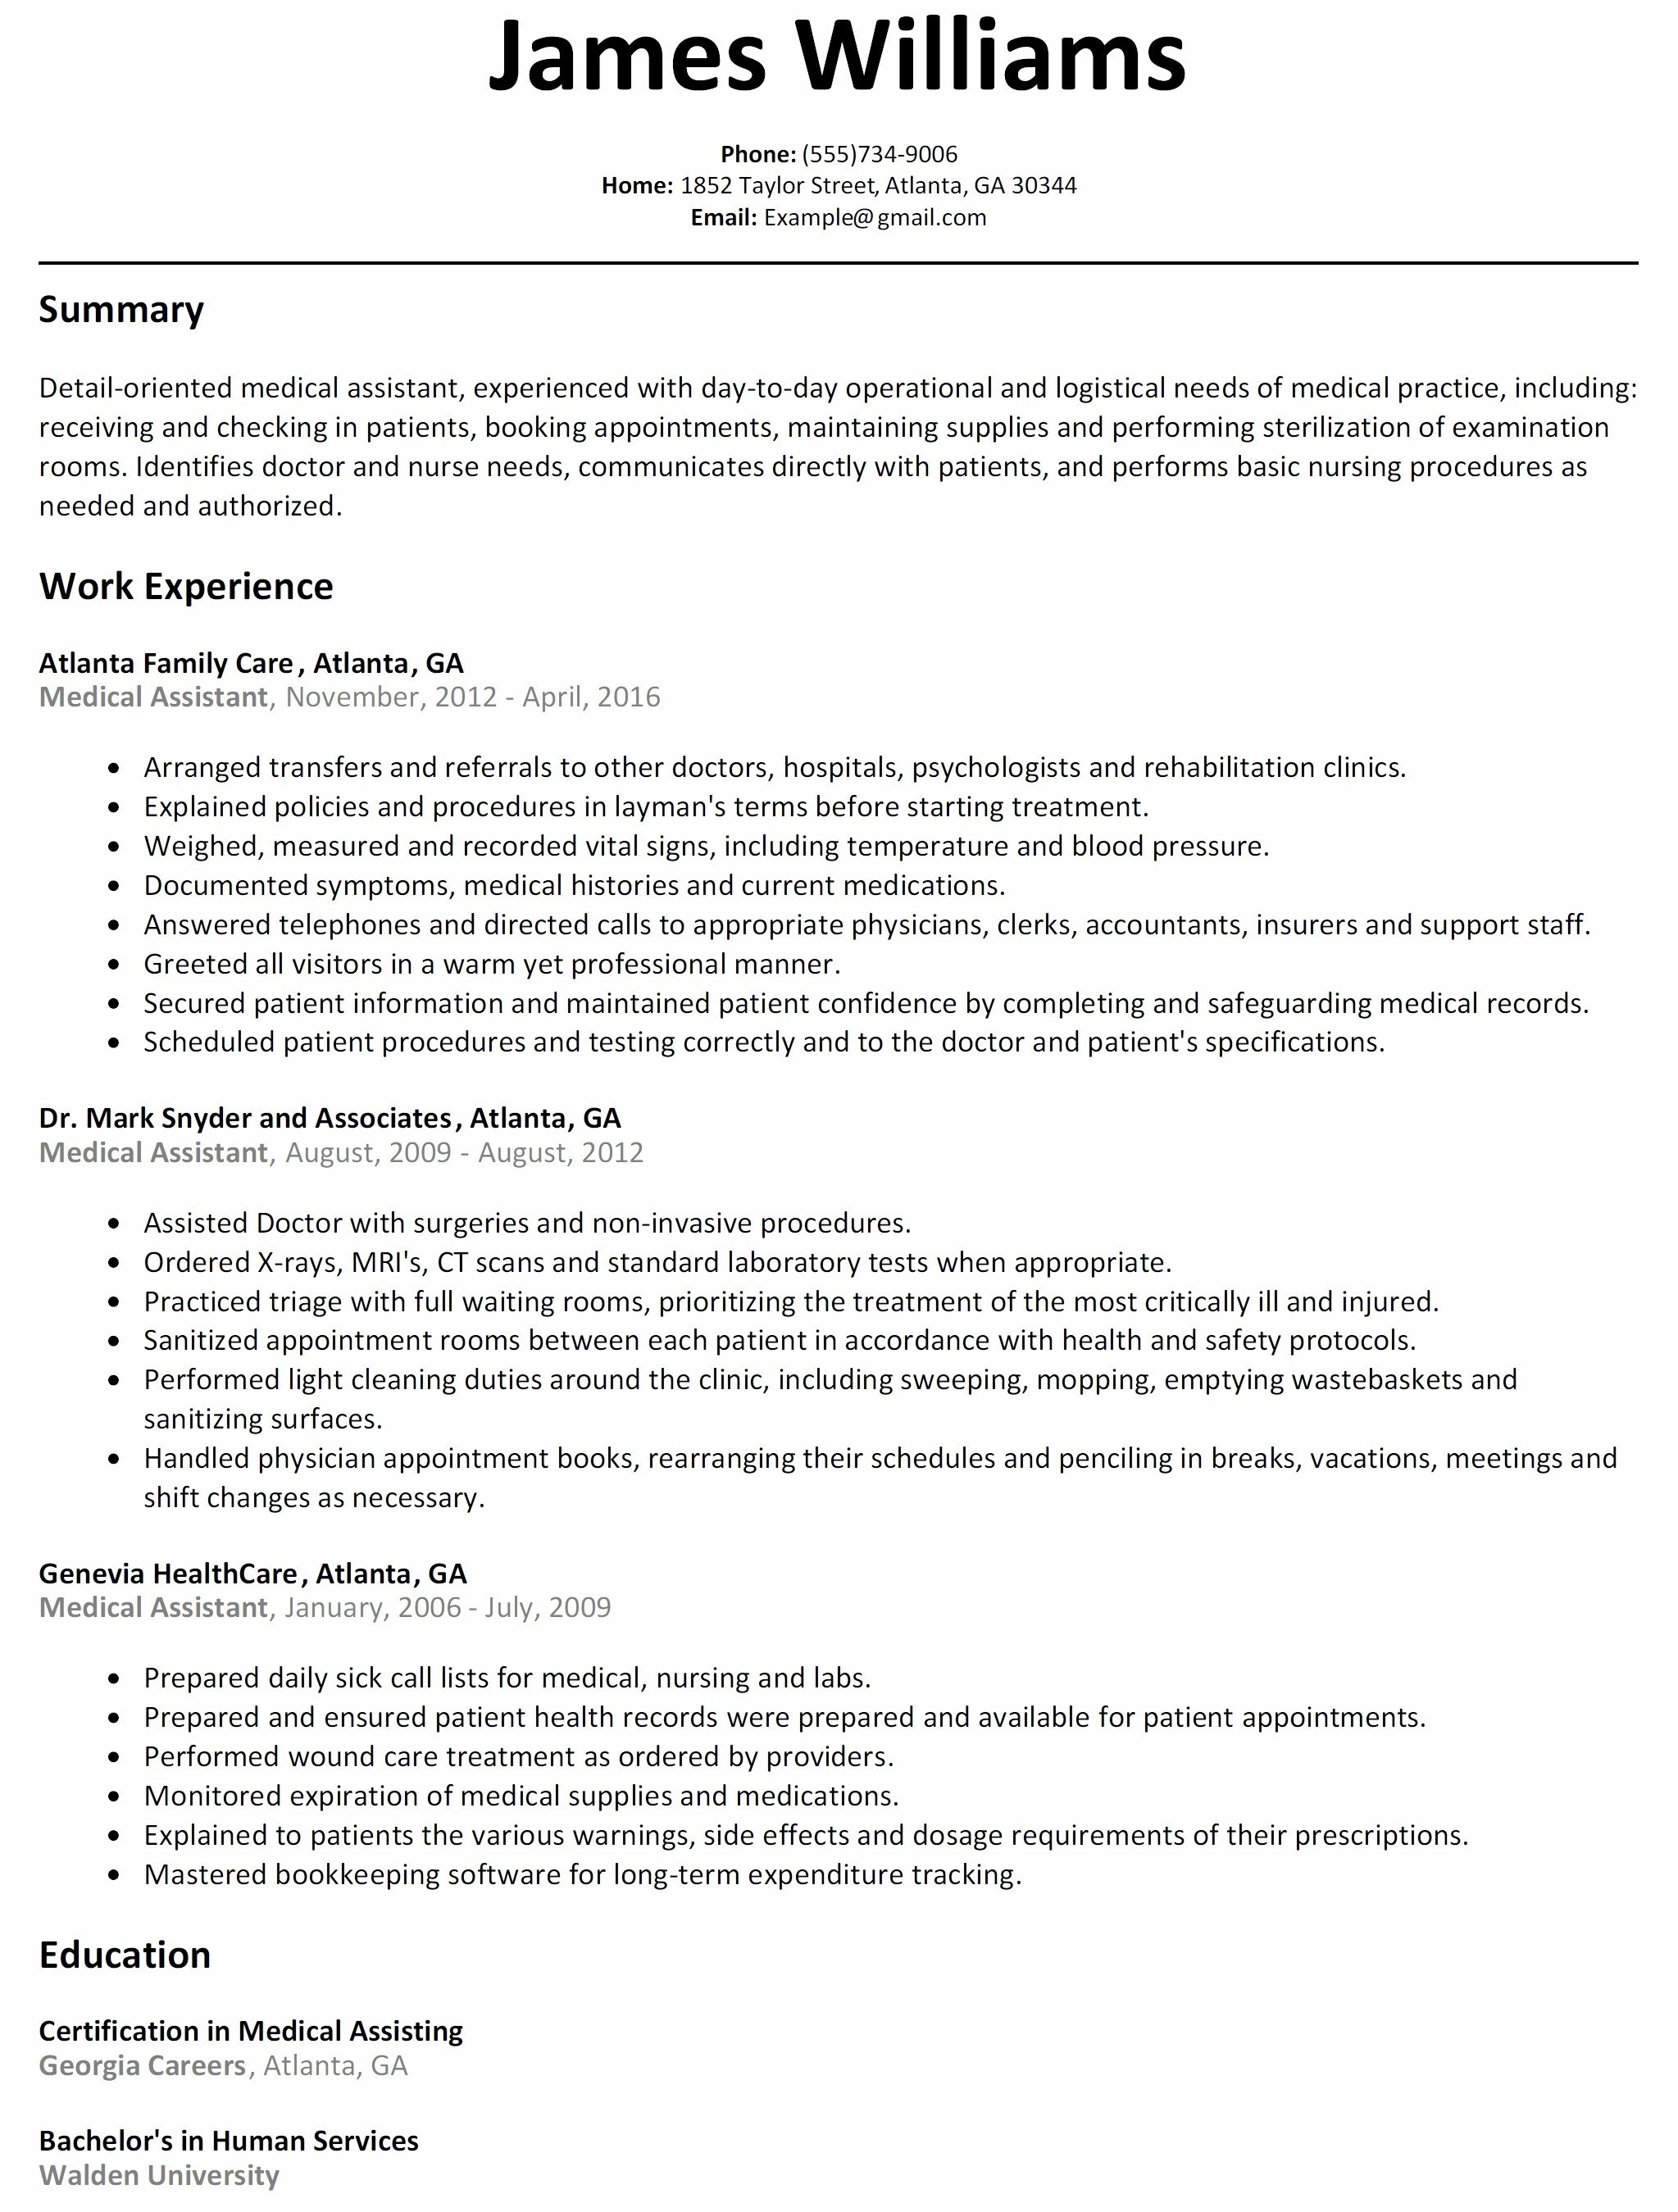 Top Job Sites To Post Resume